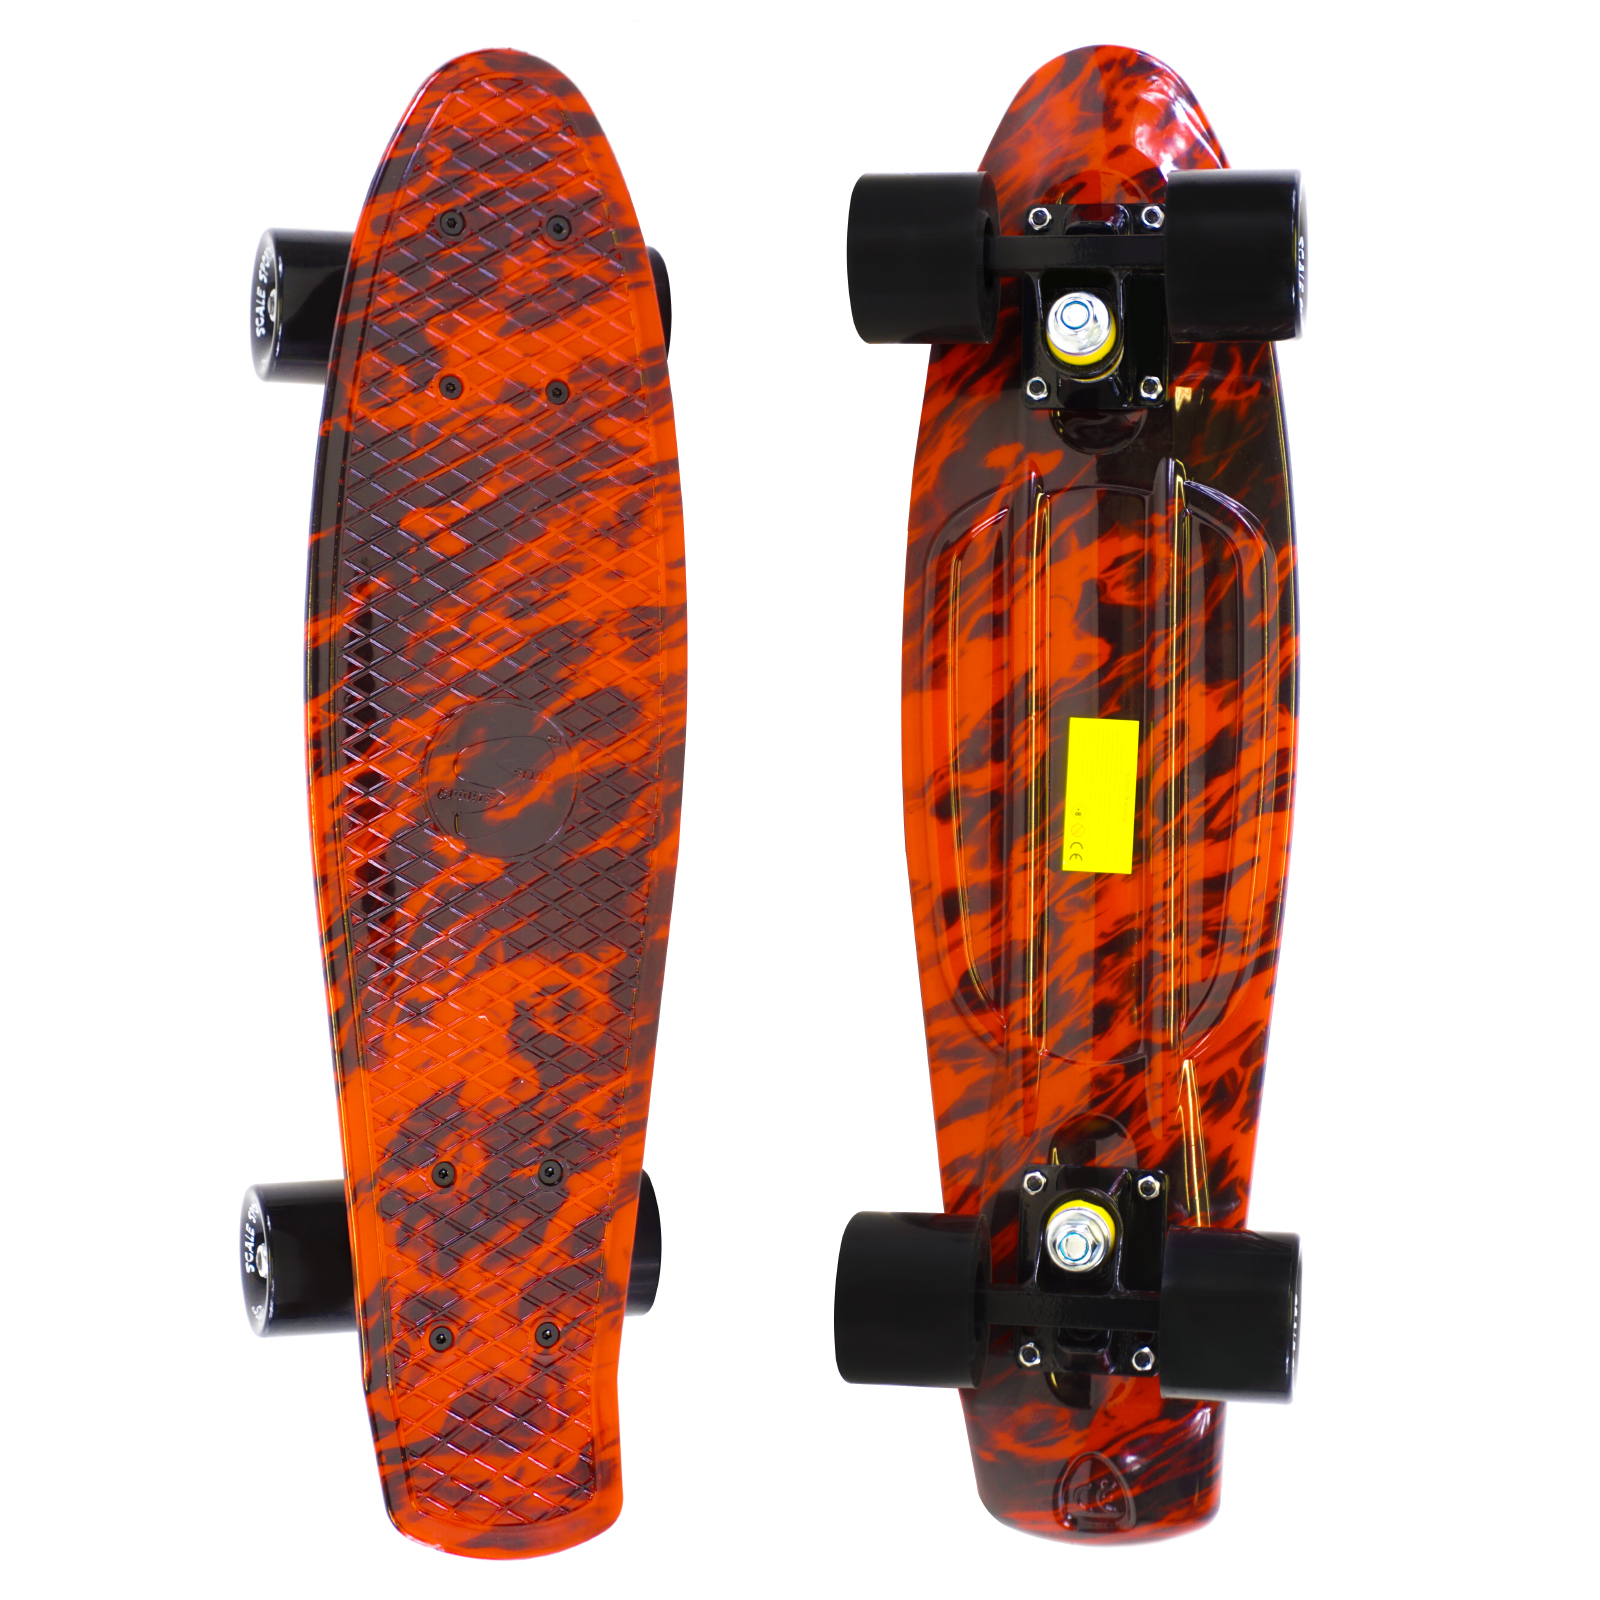 22 Skateboard Complete Street Retro Cruiser Flames Print Deck by Scale Sports